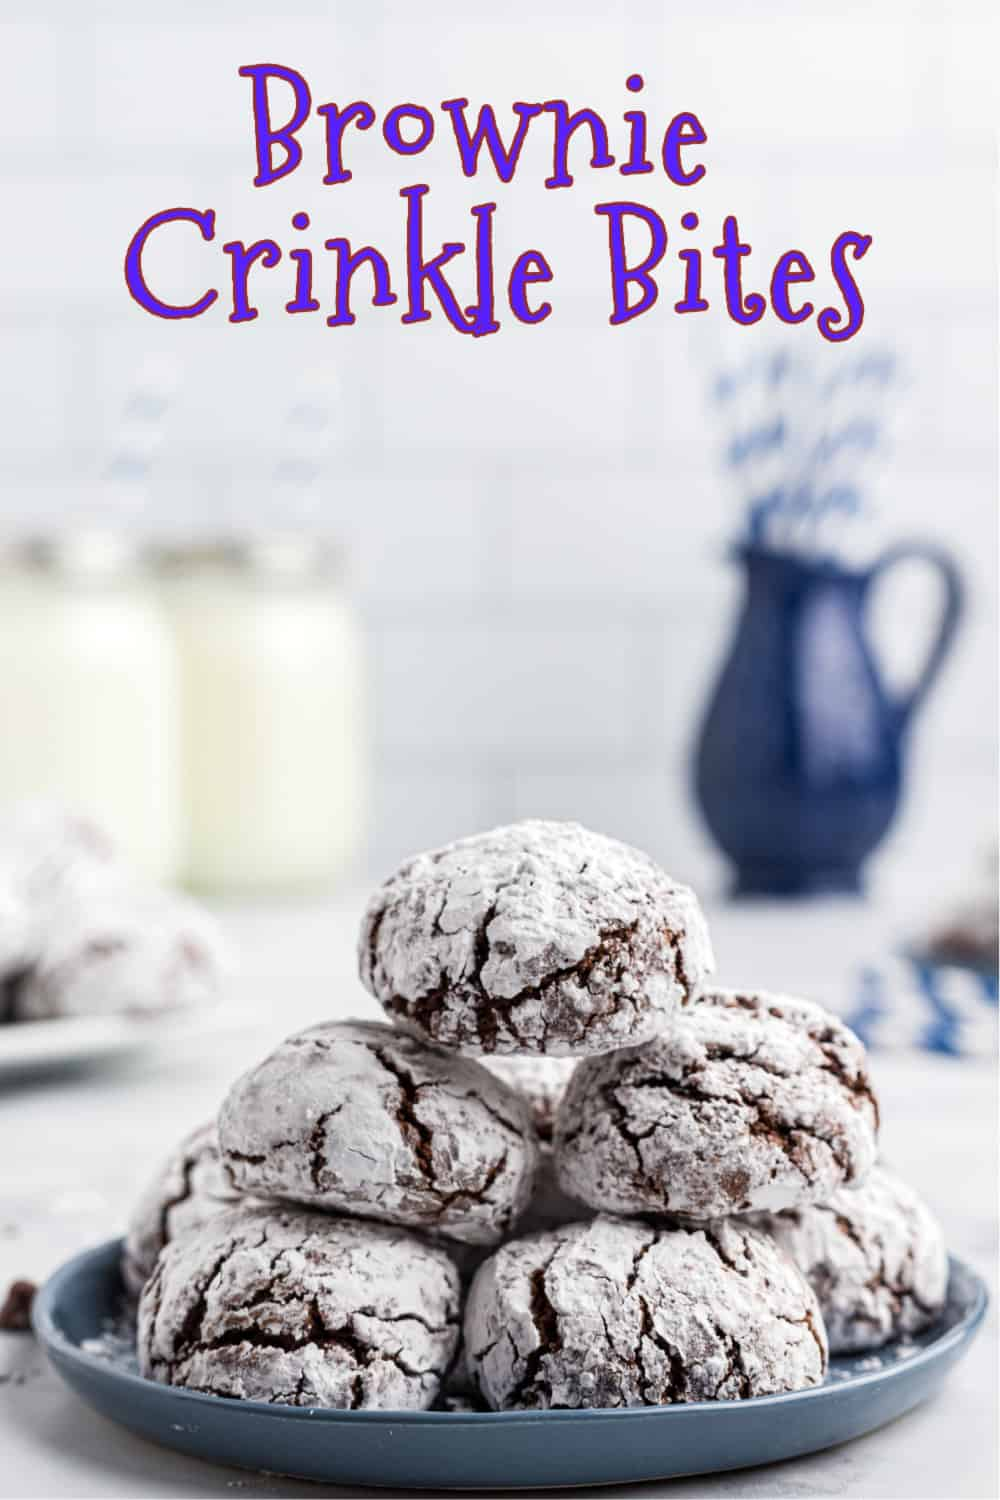 Fudgy, chocolate brownie crinkle bites are a decadent treat for the holidays. Part cookie and part brownie, these rich and chewy bites are rolled in powdered sugar to produce their iconic crinkle on top when baked. via @Mooreorlesscook